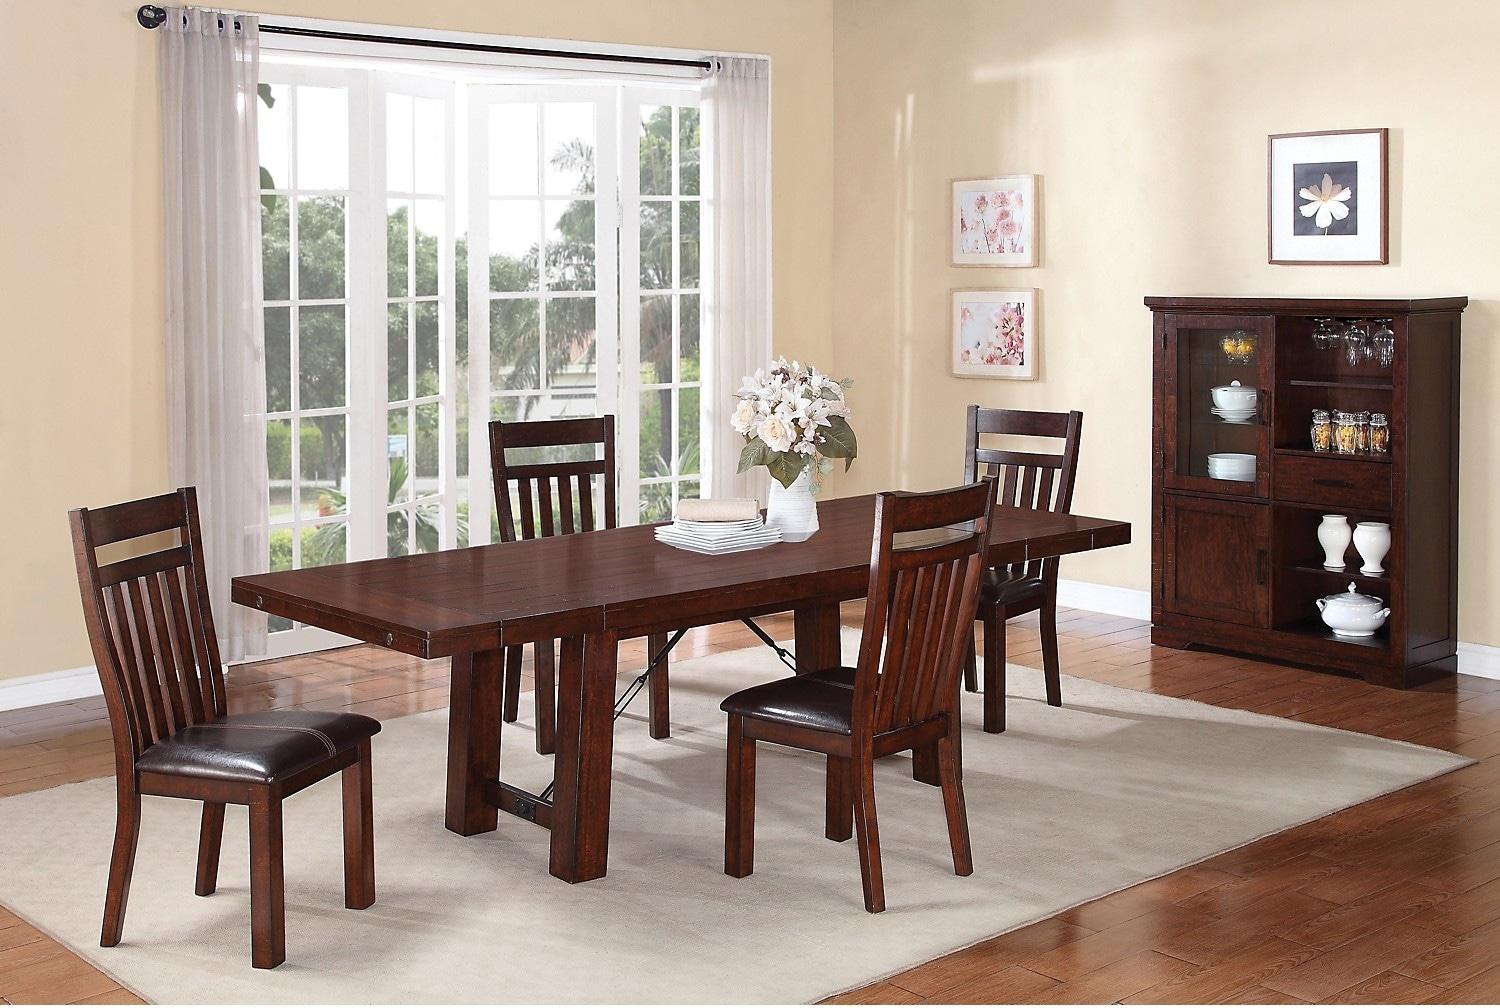 Dining Room Furniture - Sonoma 8-Piece Dining Package with Server